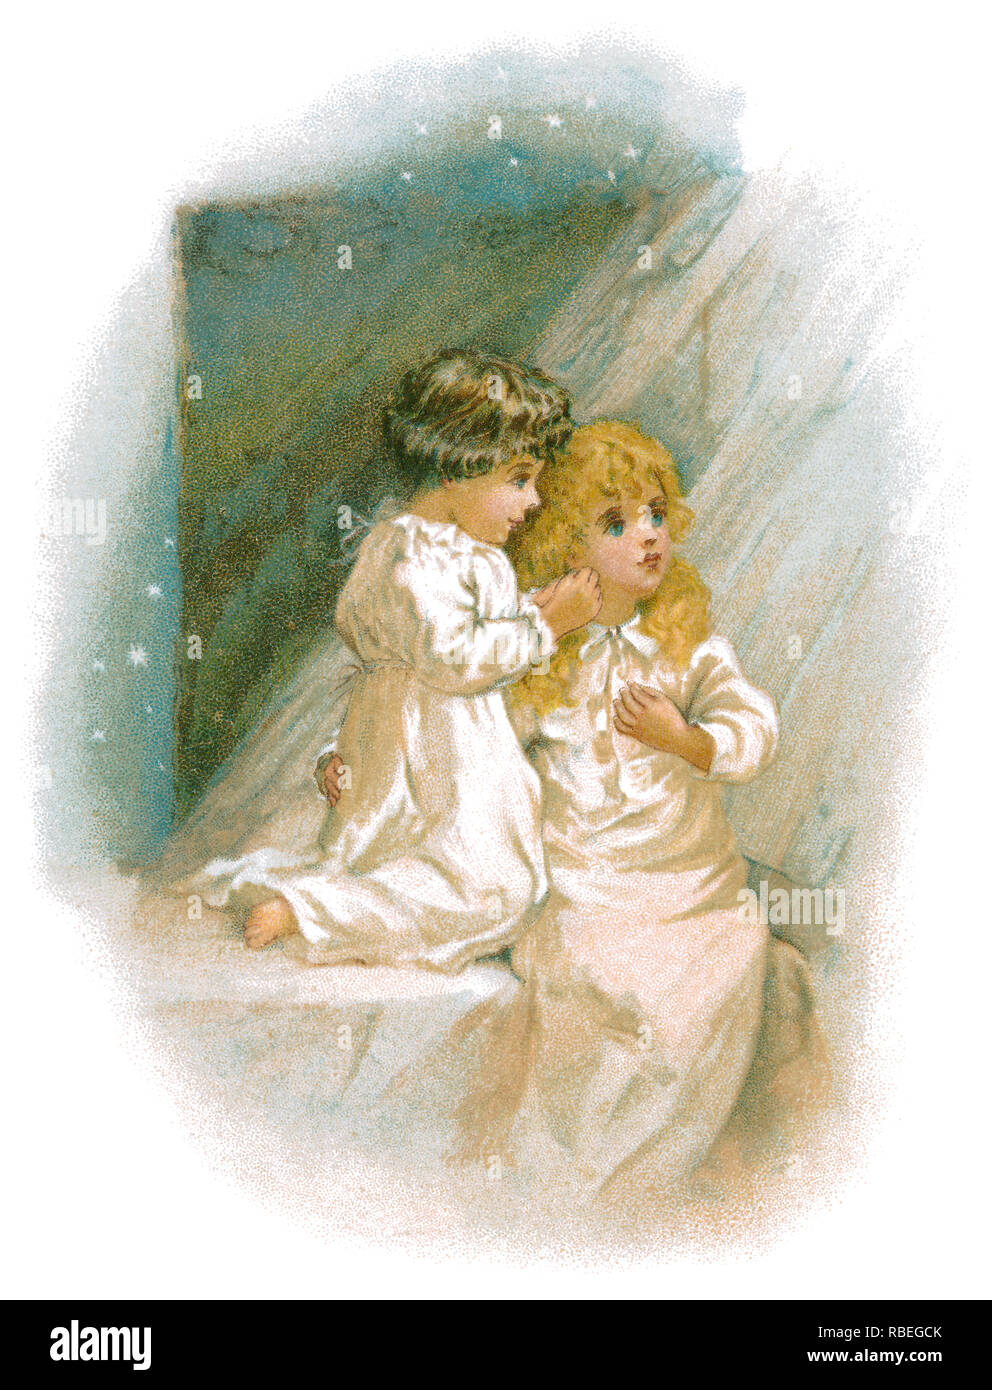 1893 sentimental Victorian illustration of two children. - Stock Image